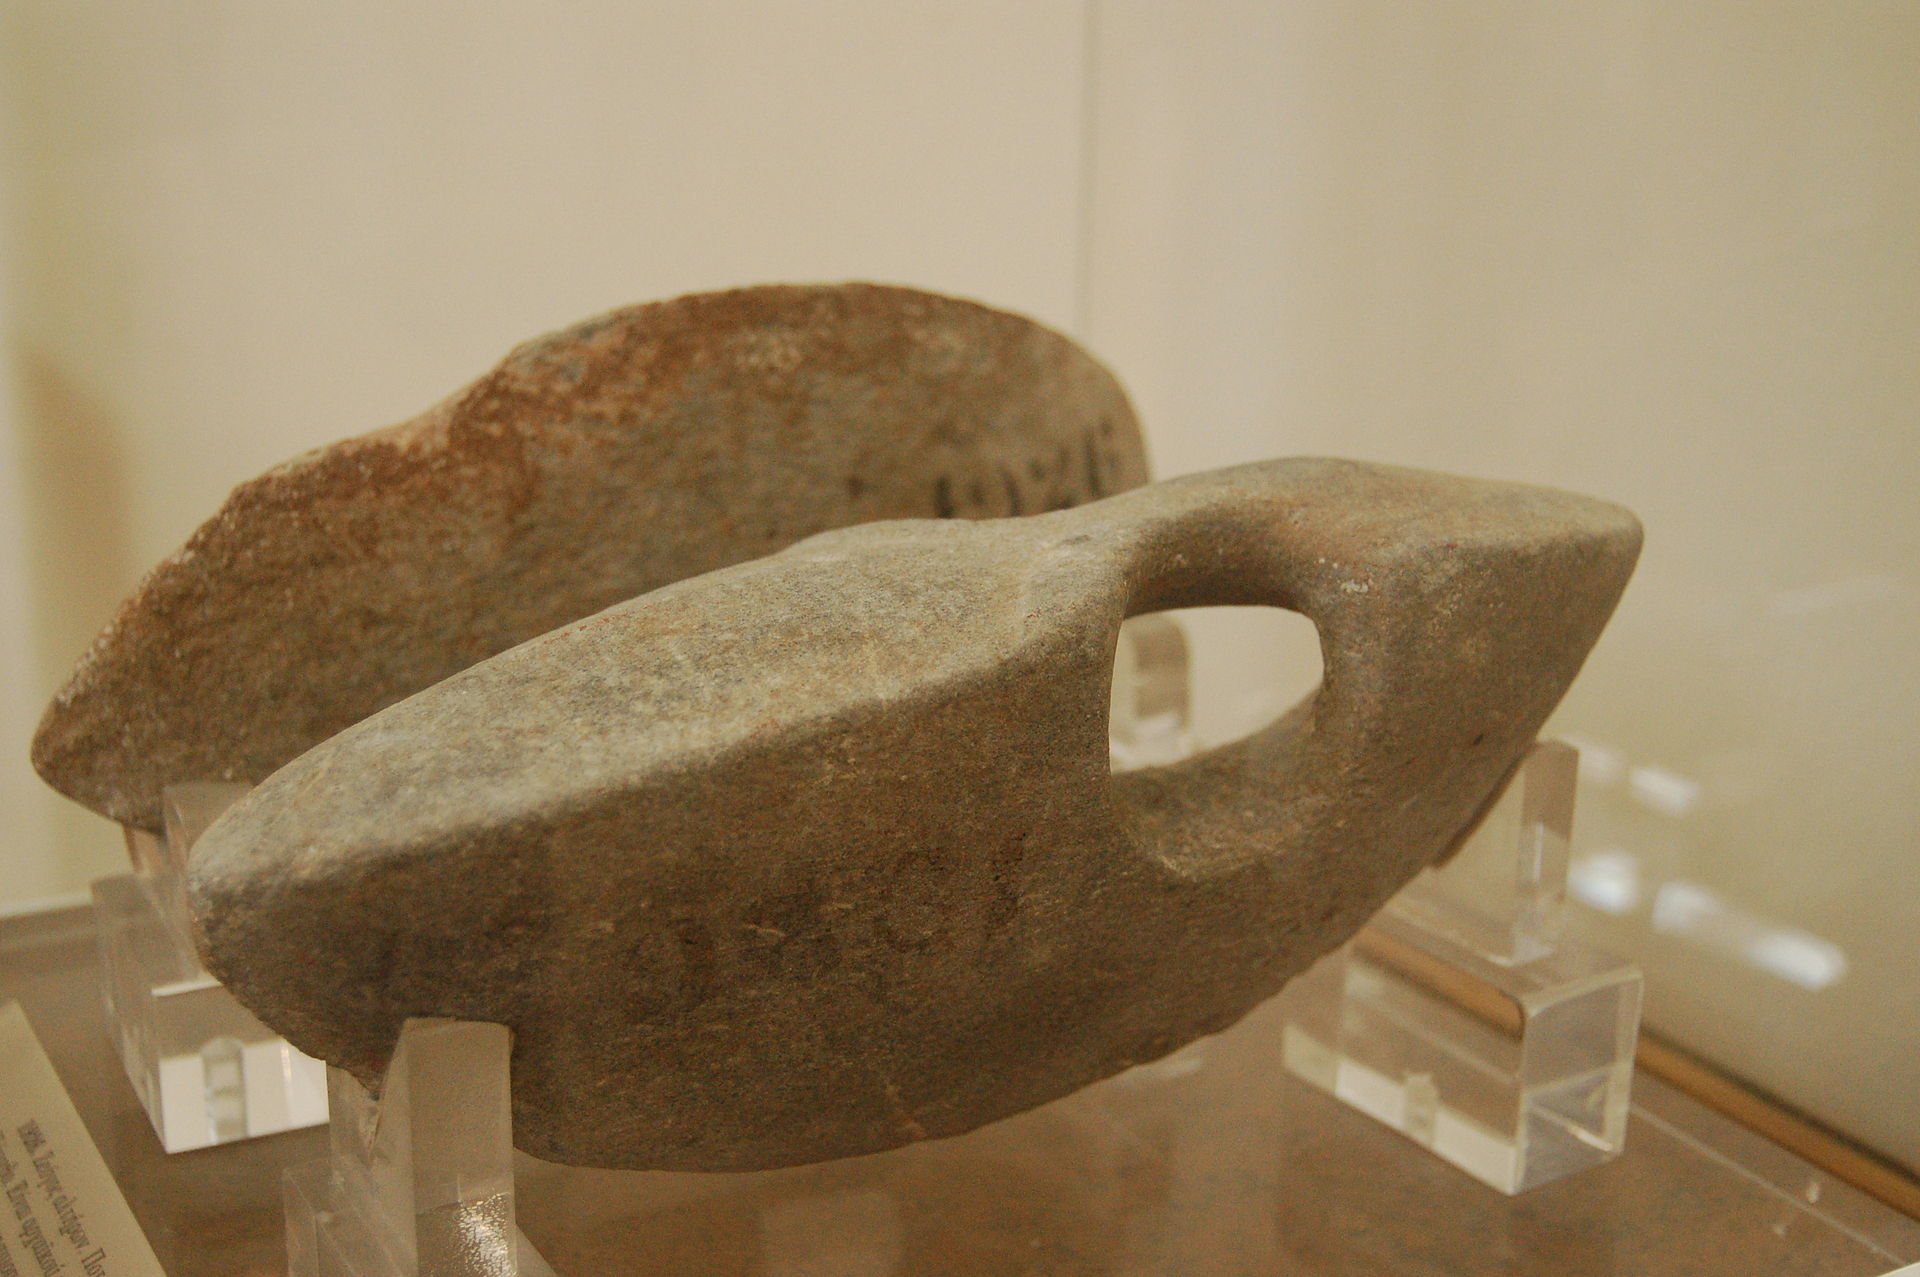 A pair of Greek halteres used for weightlifting and long jumping - History of Strength Training